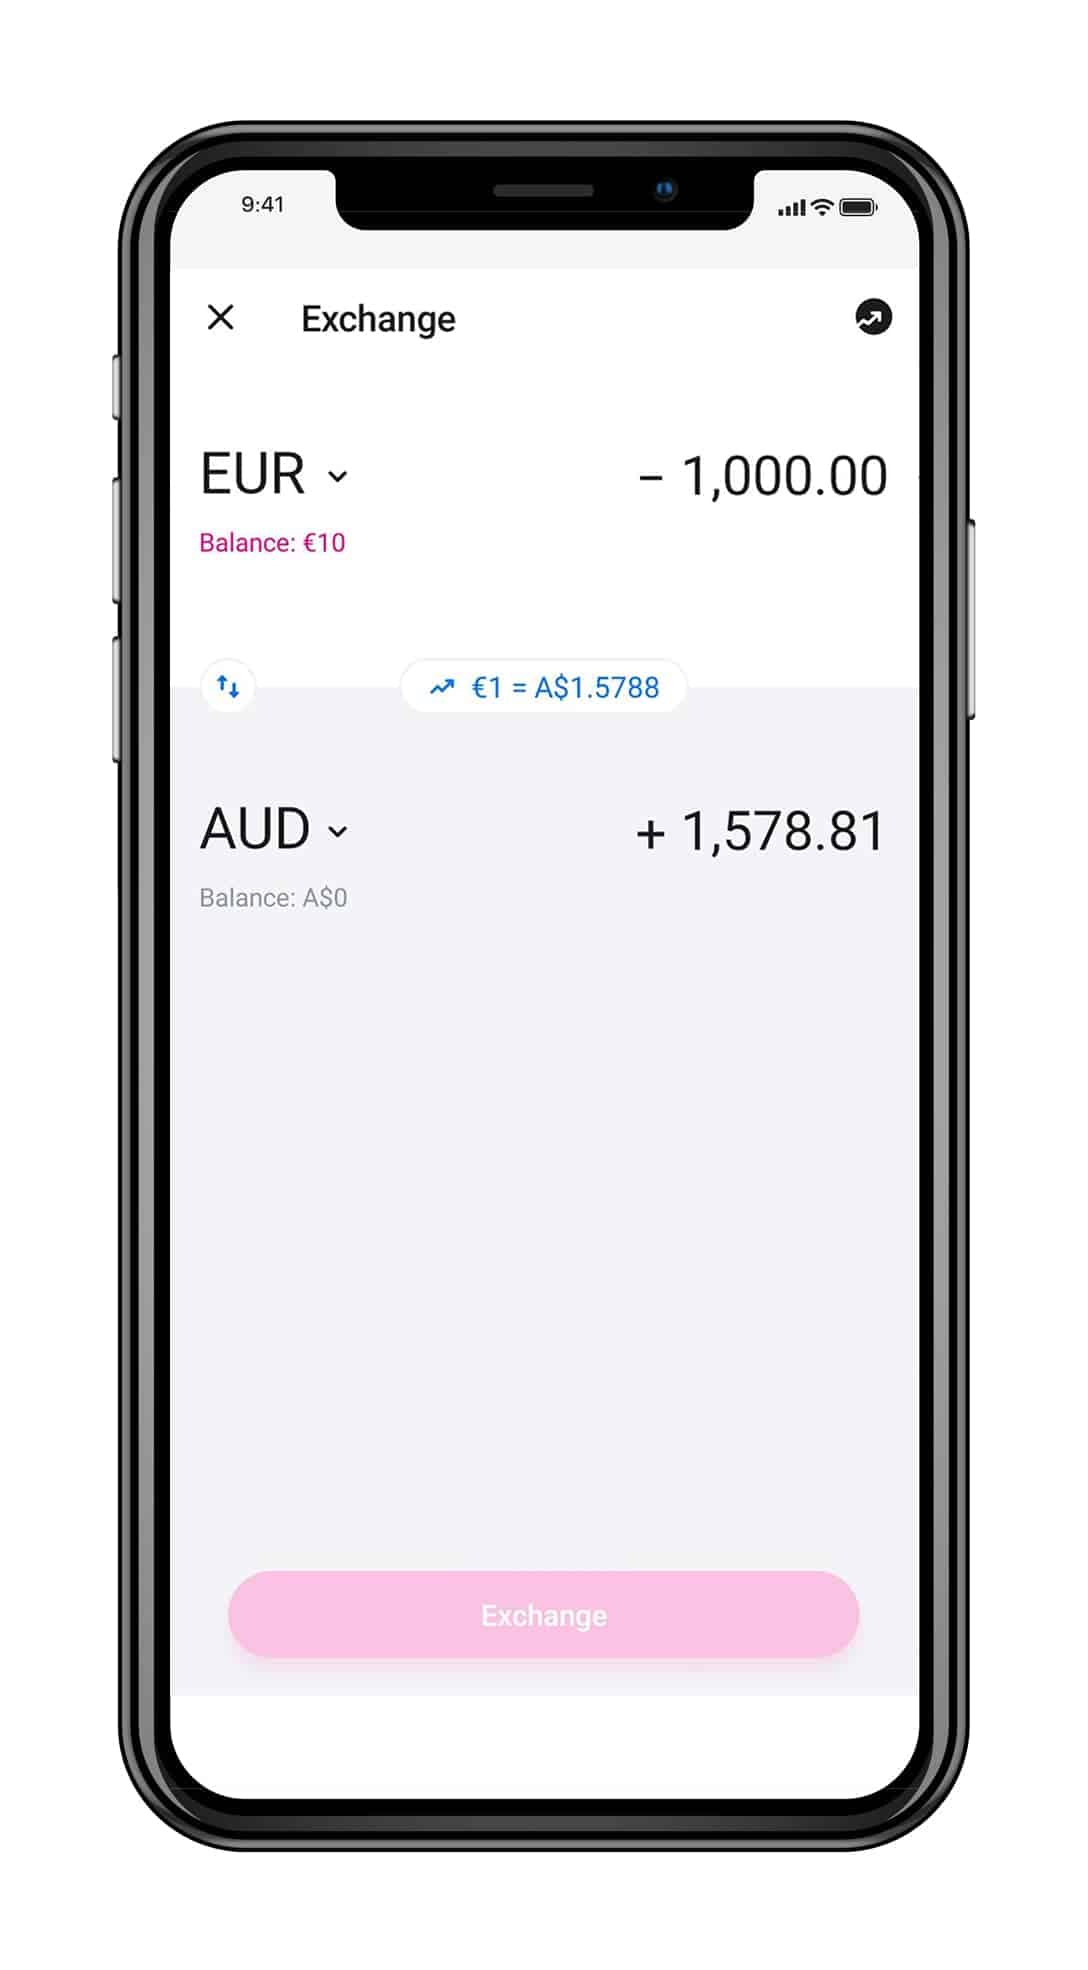 N26 vs Revolut - Which Card is Better? My Honest In-Depth